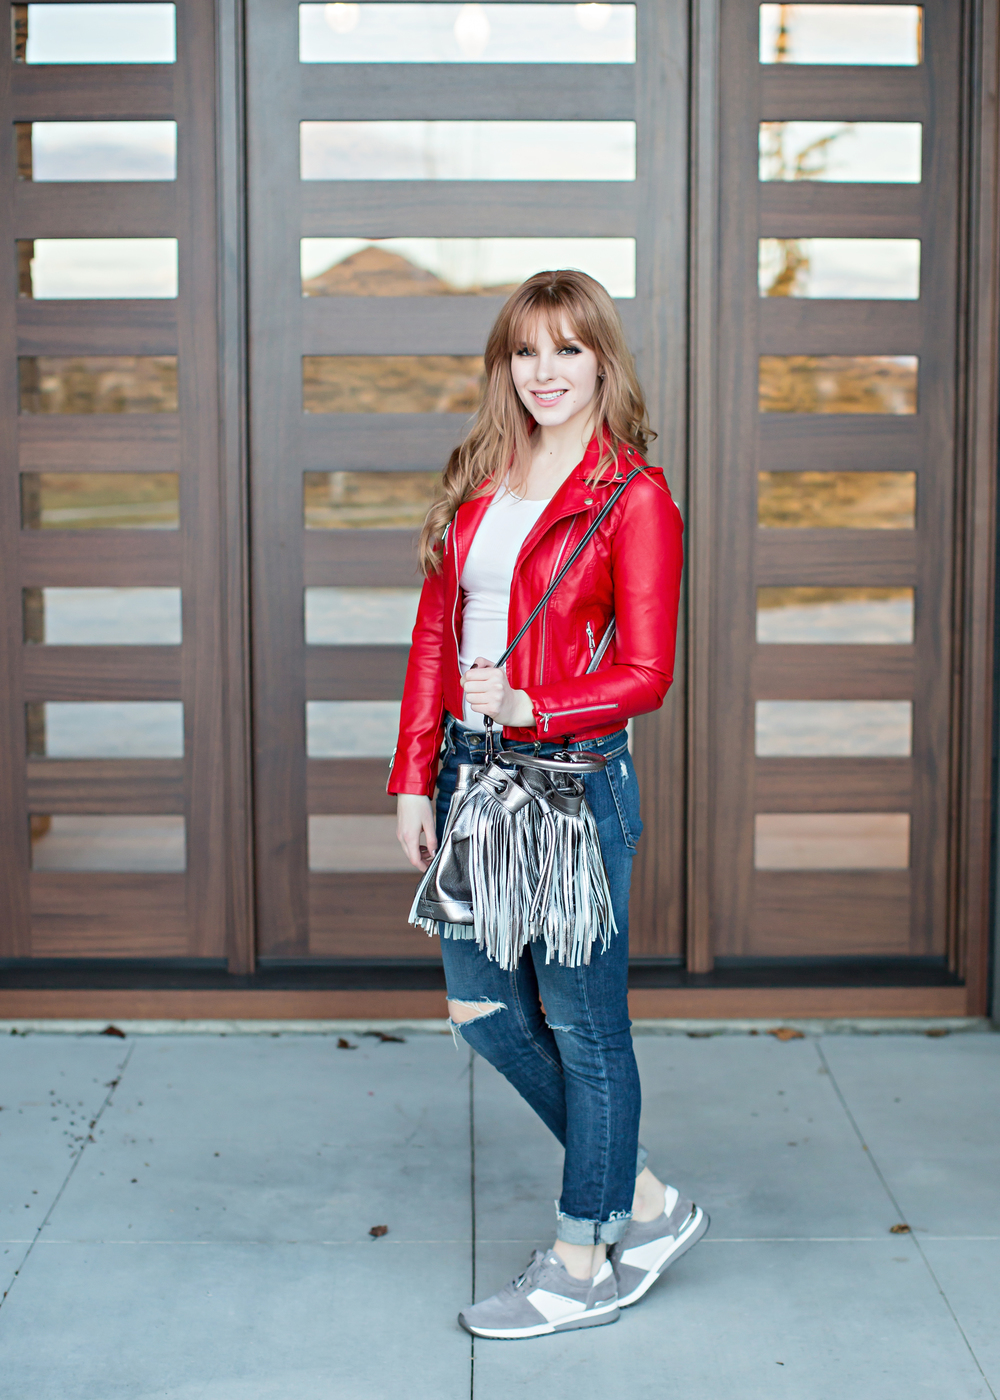 Jacket: Romwe | Tee: Forever21 | Jeans: Rag&Bone skinny | Bag: Milly | Sneakers: Michael Kors | Photos: Tara Lynn Photography